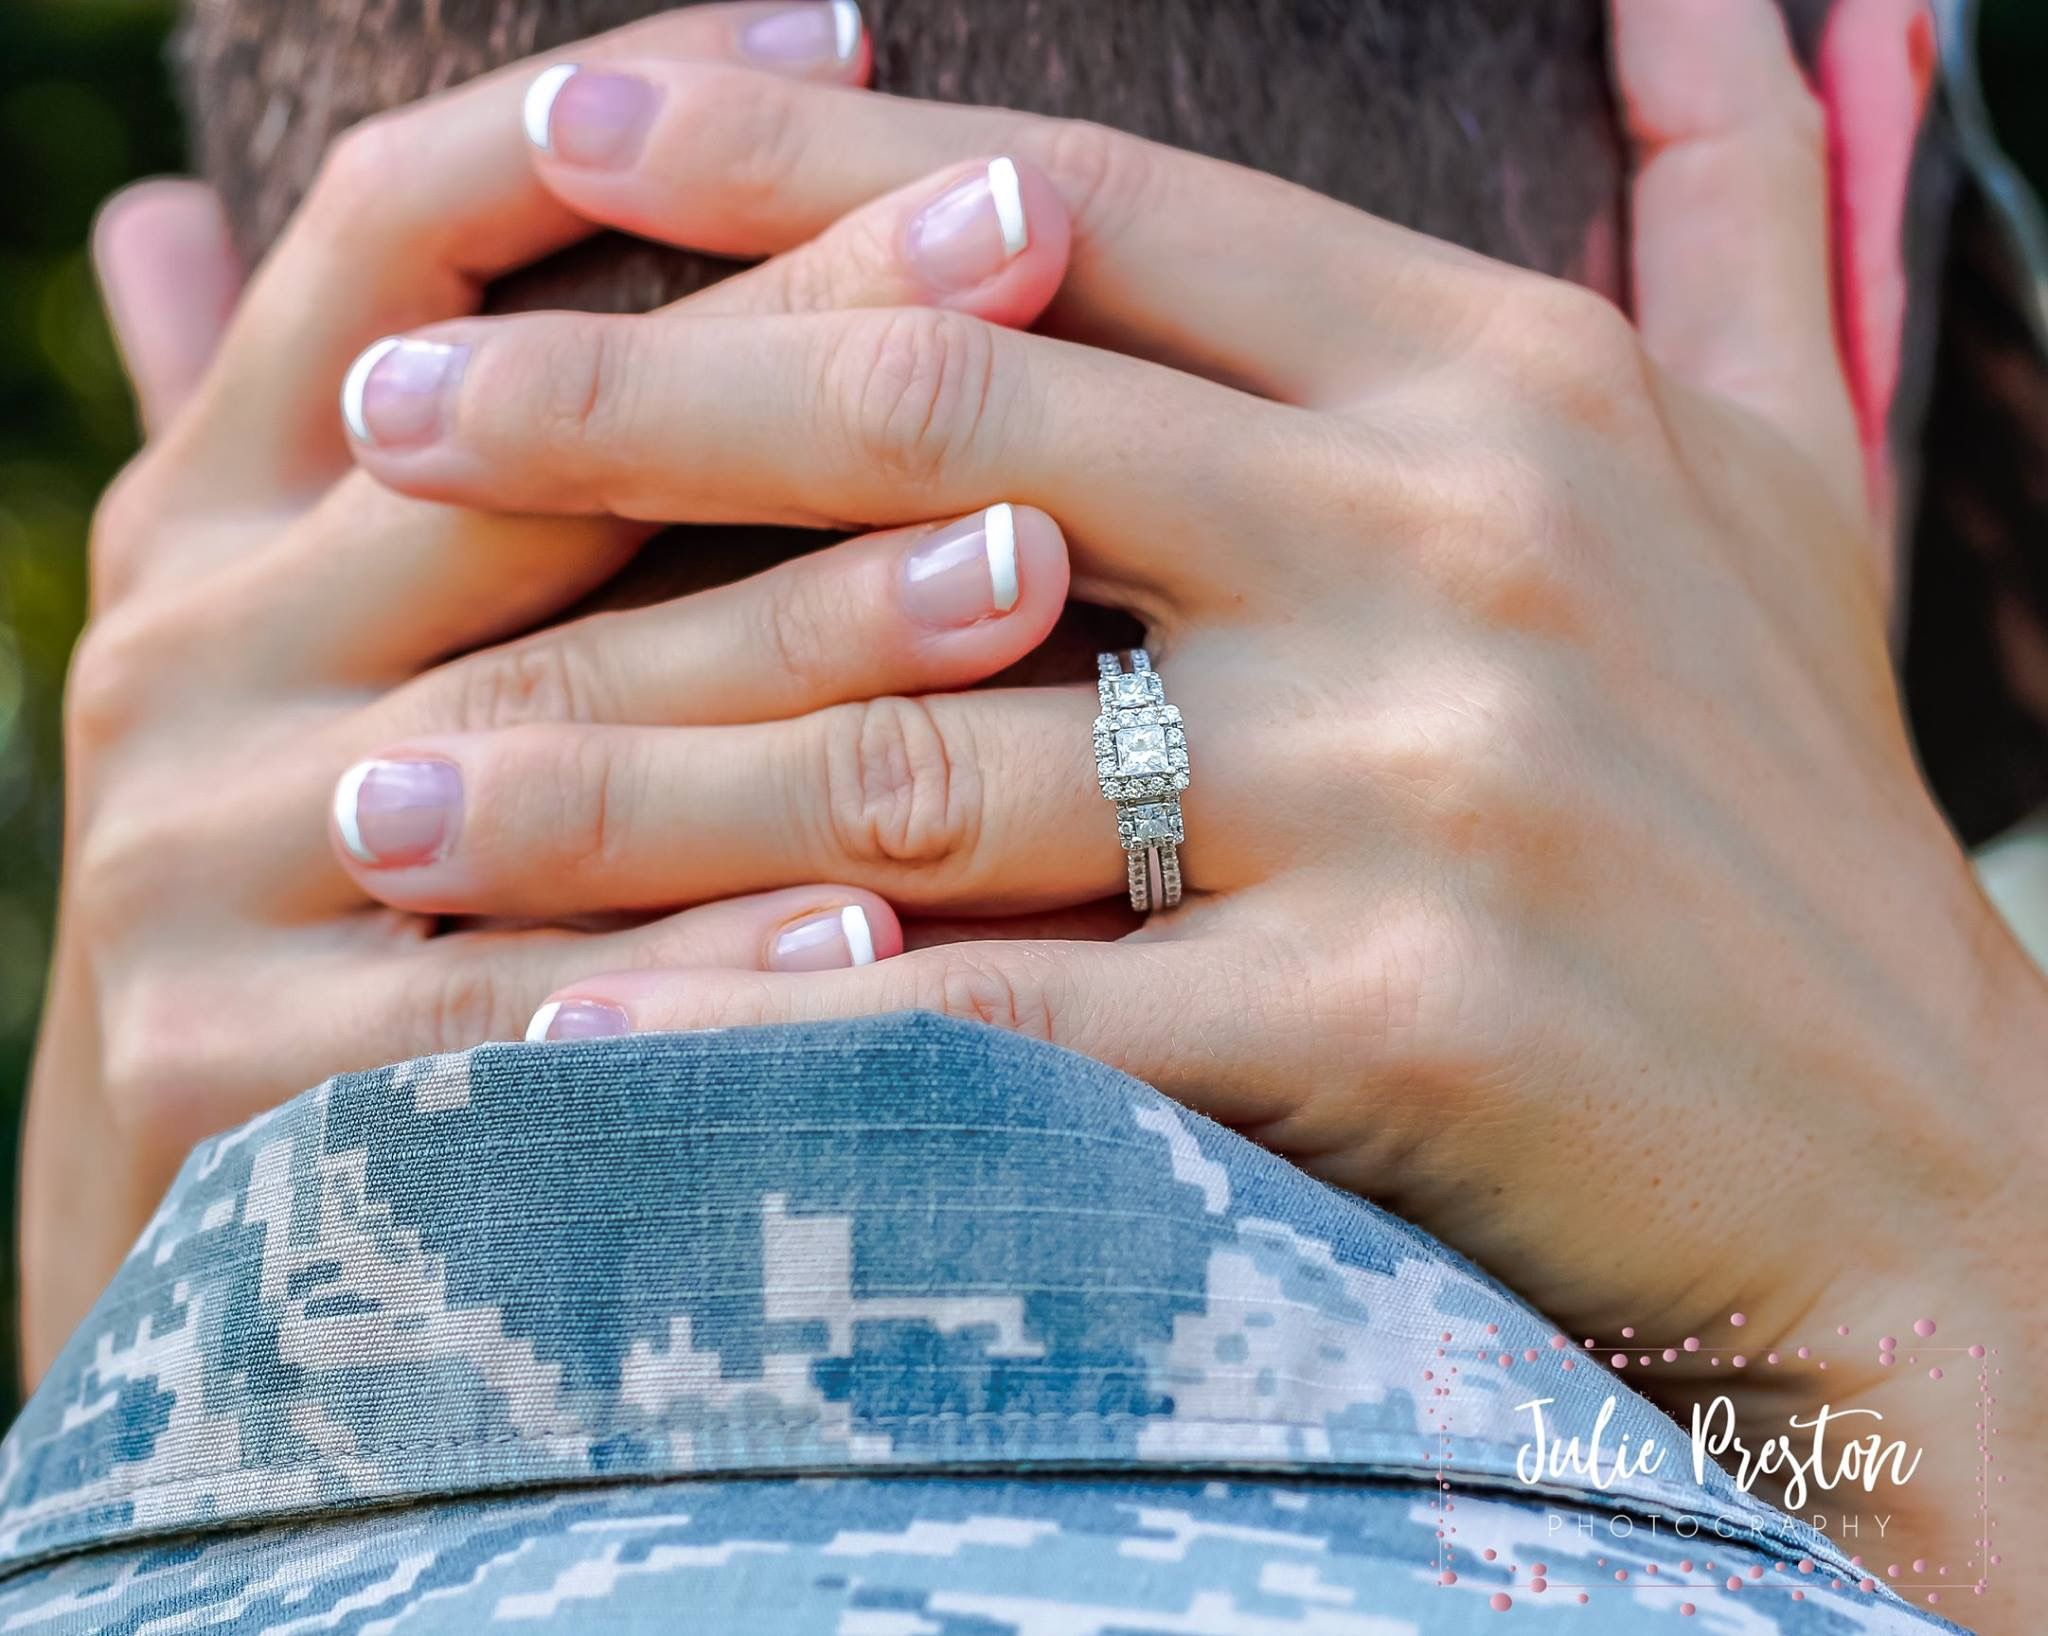 Air Force Military Wedding Diamond Engagement Ring Proposal Fatigues Army Camo Ring Fiance Fiancee Married Marriage Manicure Fren Jewelry Fashion Rings